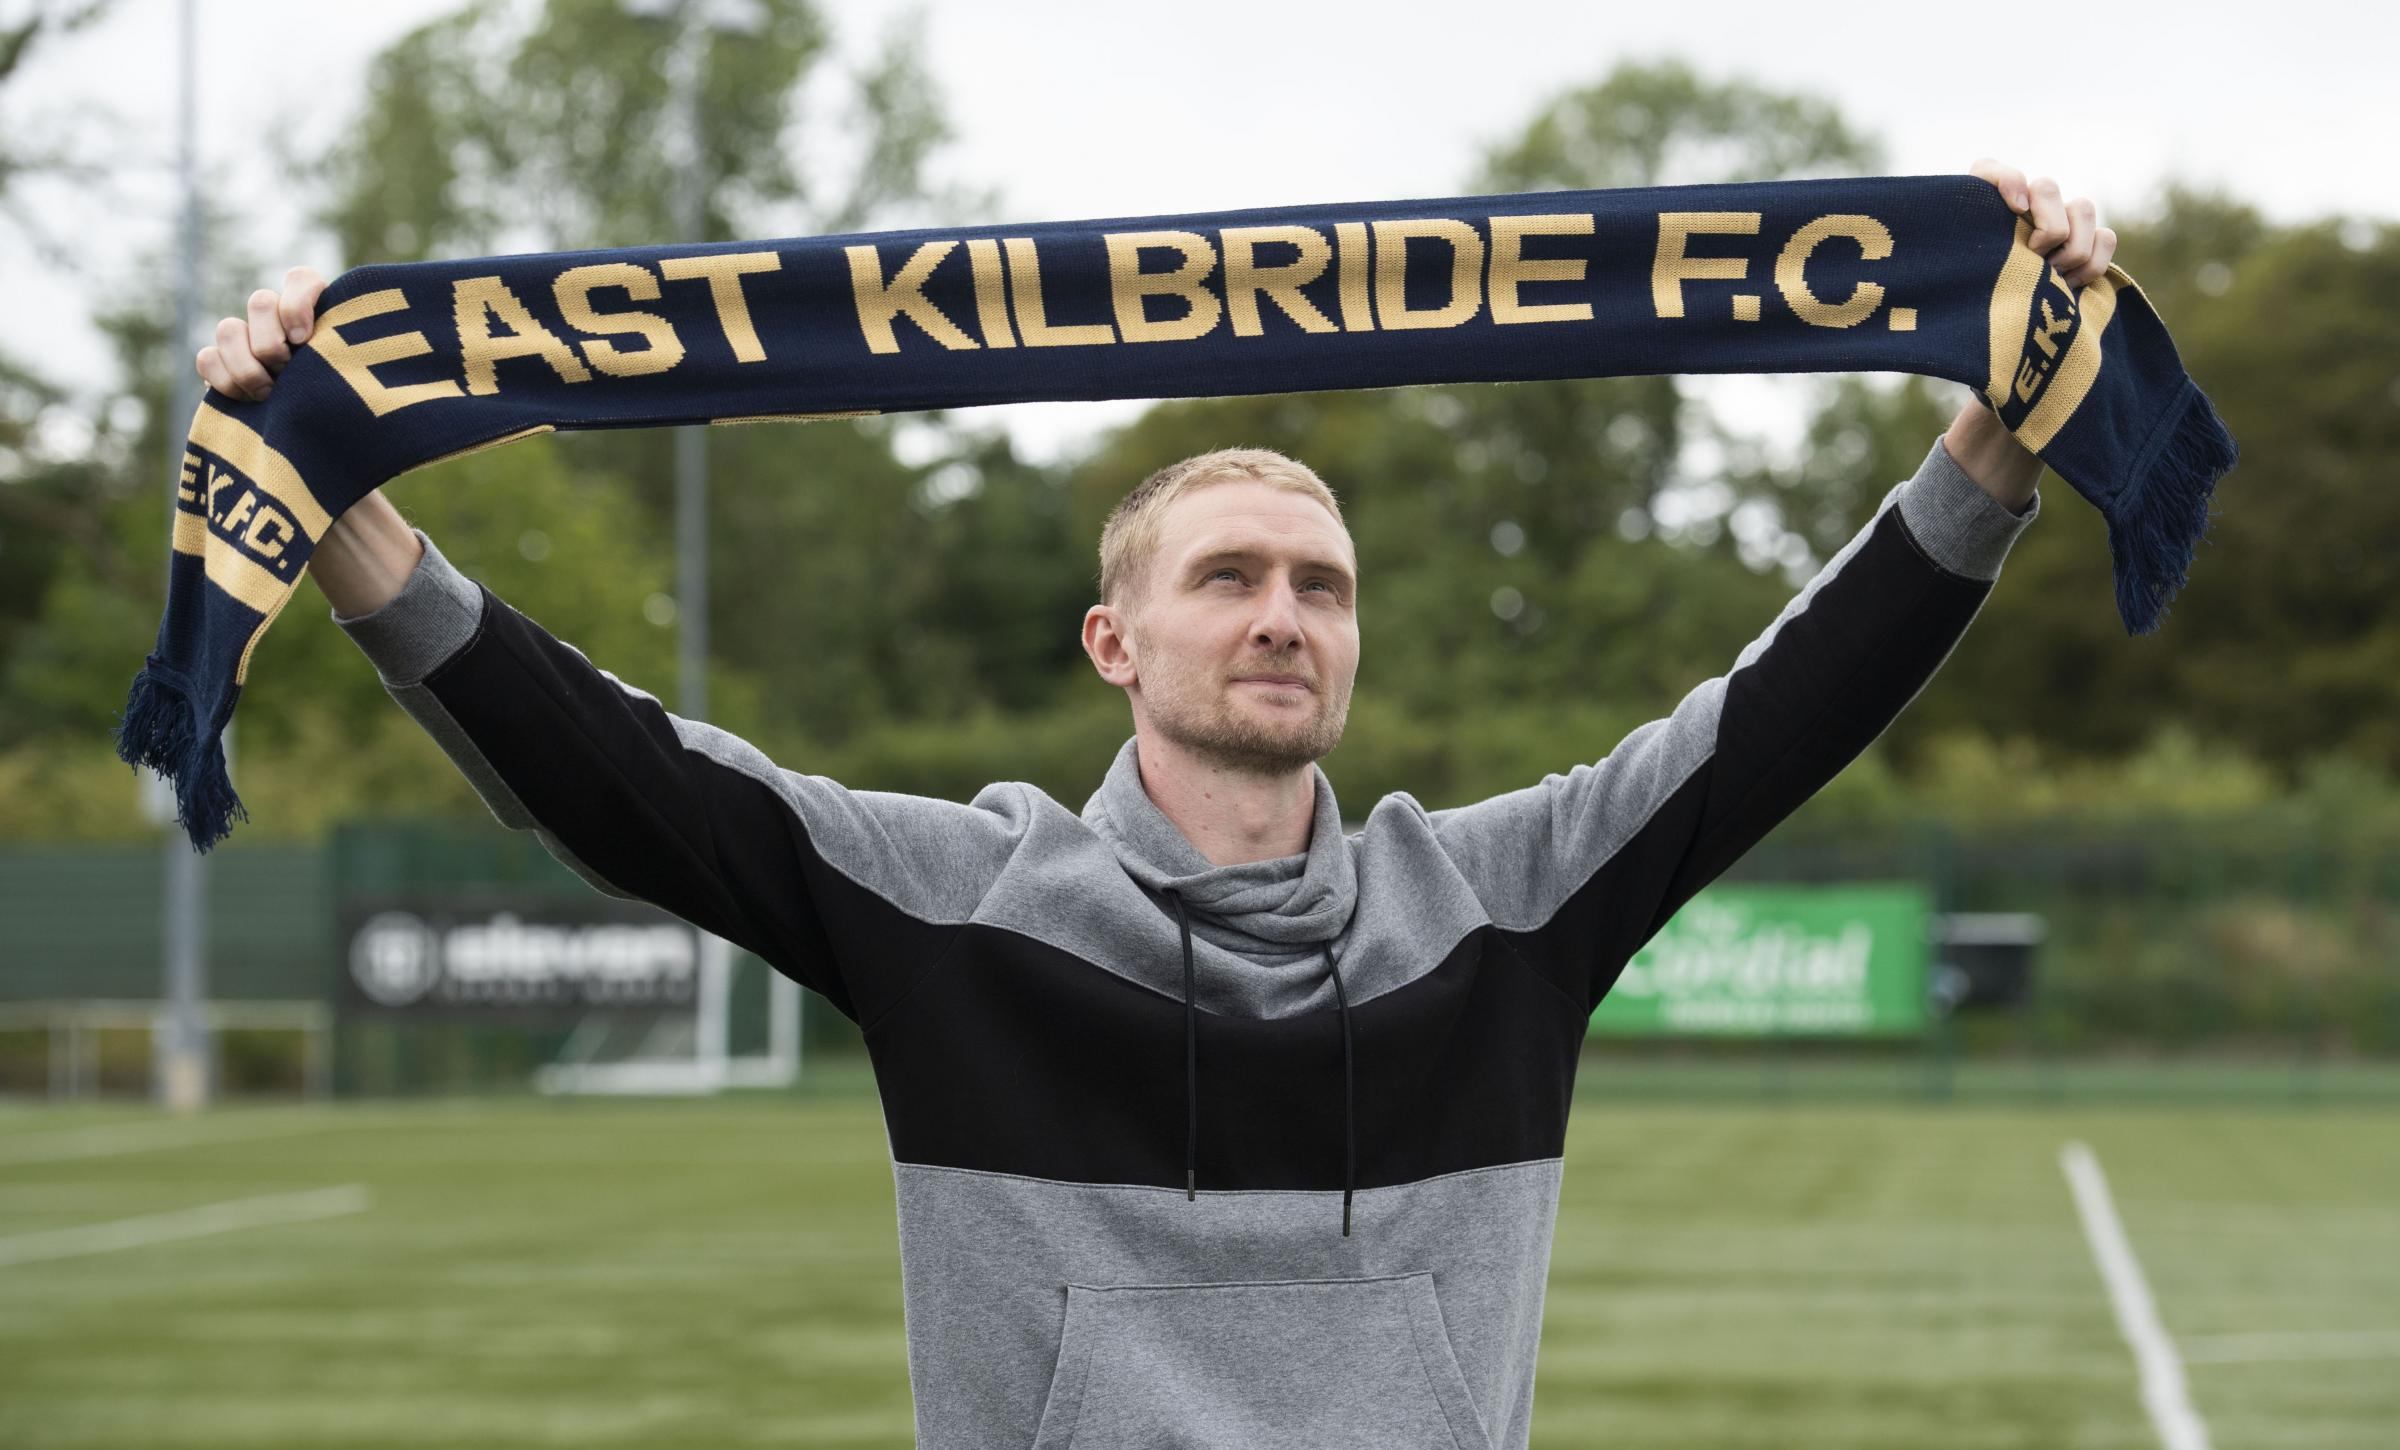 Chris Erskine ambitious as ever as midfielder embarks on a new chapter with East Kilbride